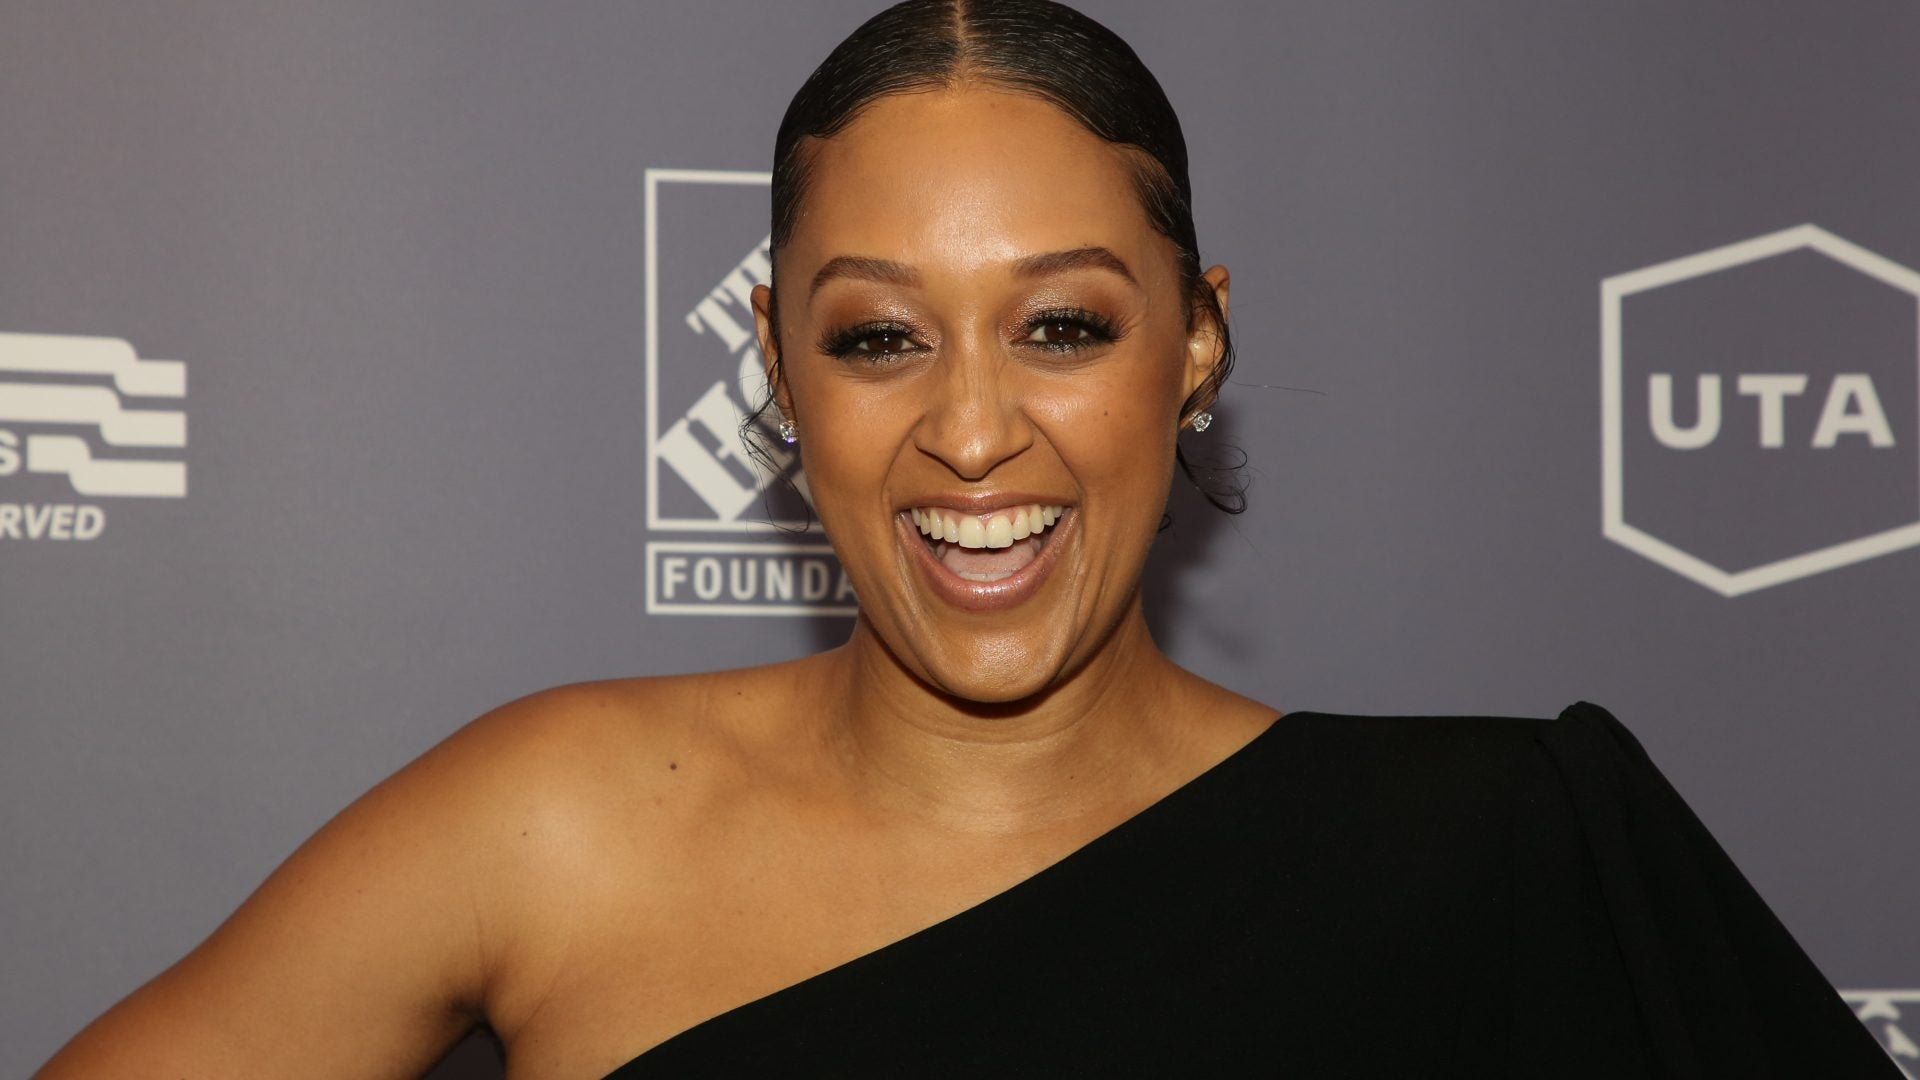 Tia Mowry-Hardrict Advises Women To Fill Their Own Cup First